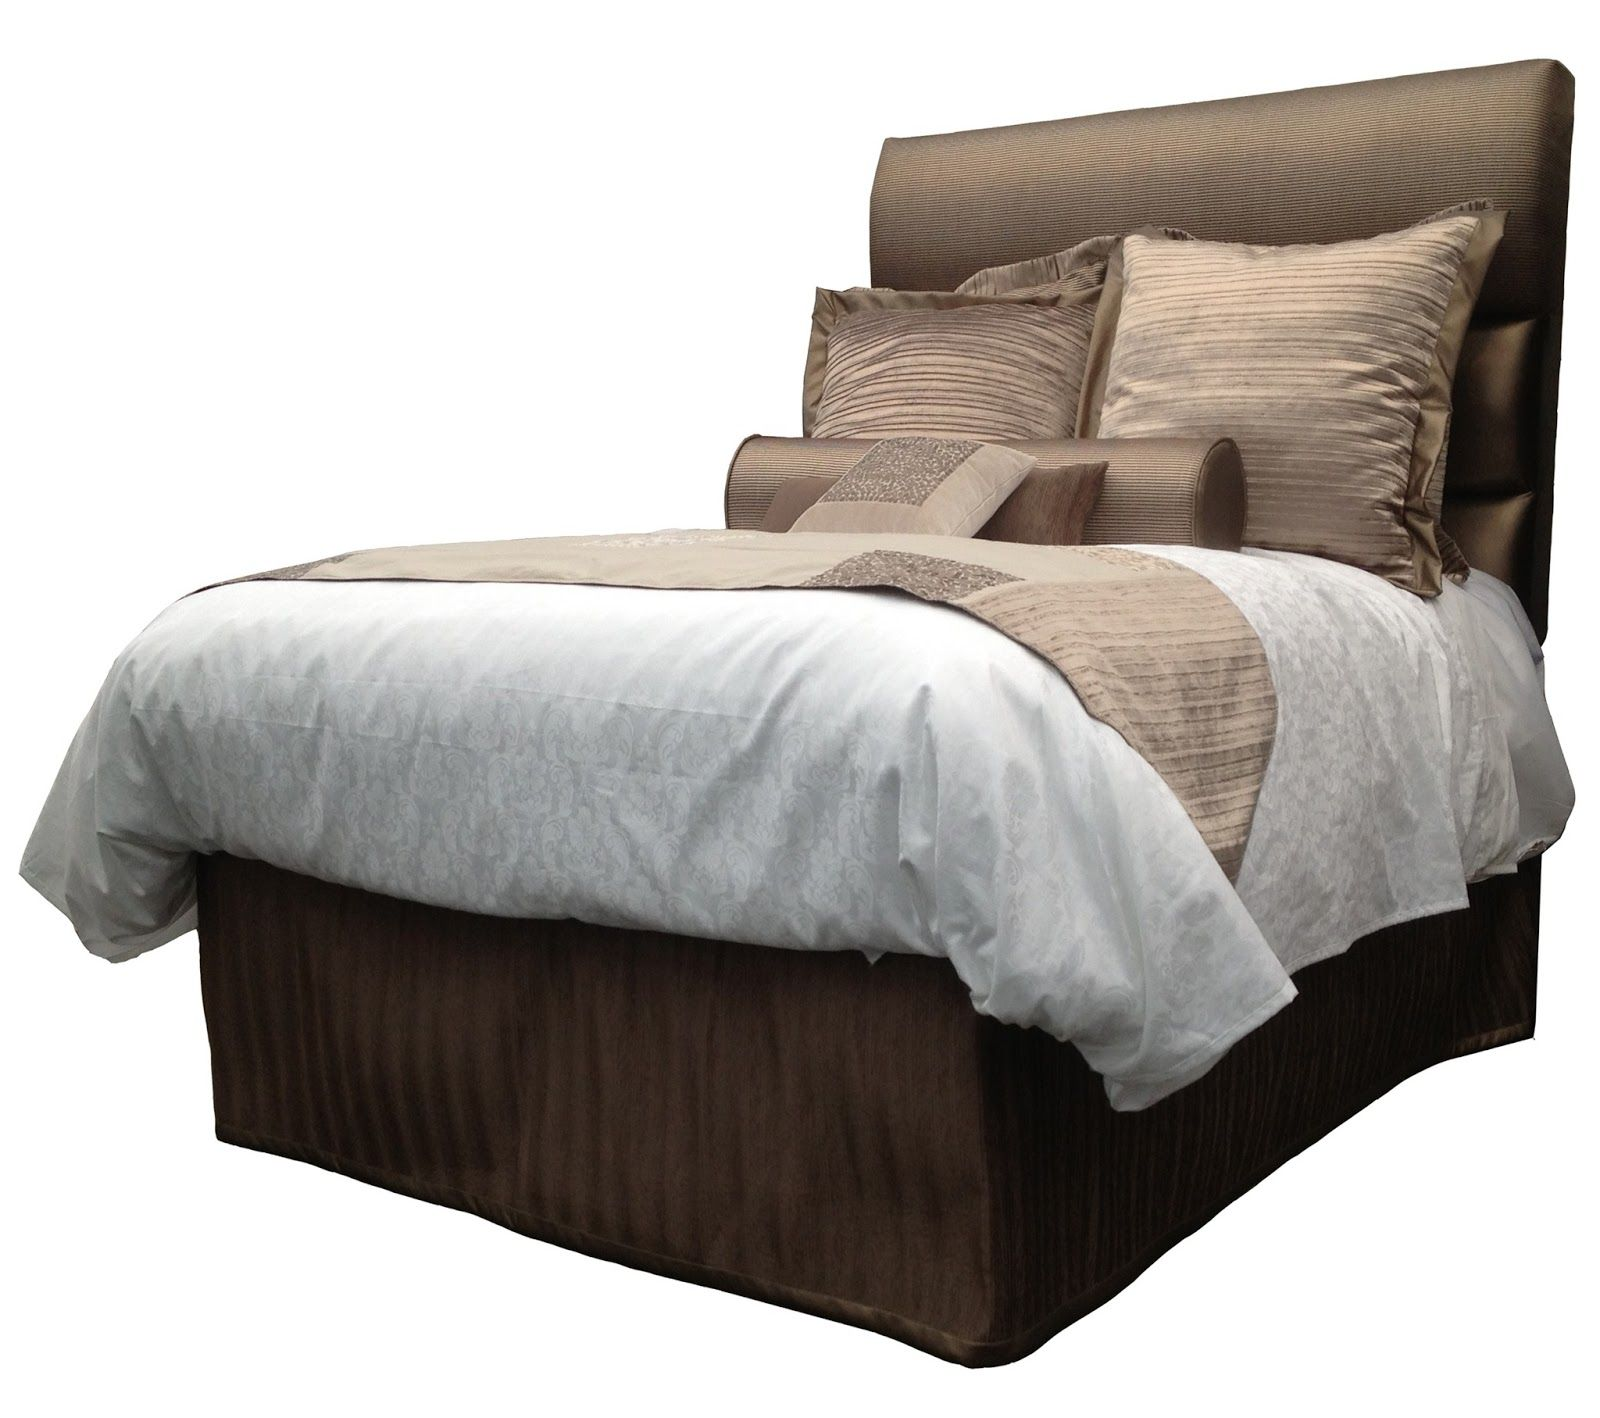 Koni Hospitality S New Platform Bed Skirt This Bedskirt Is Made To Give The Look Of A Platform